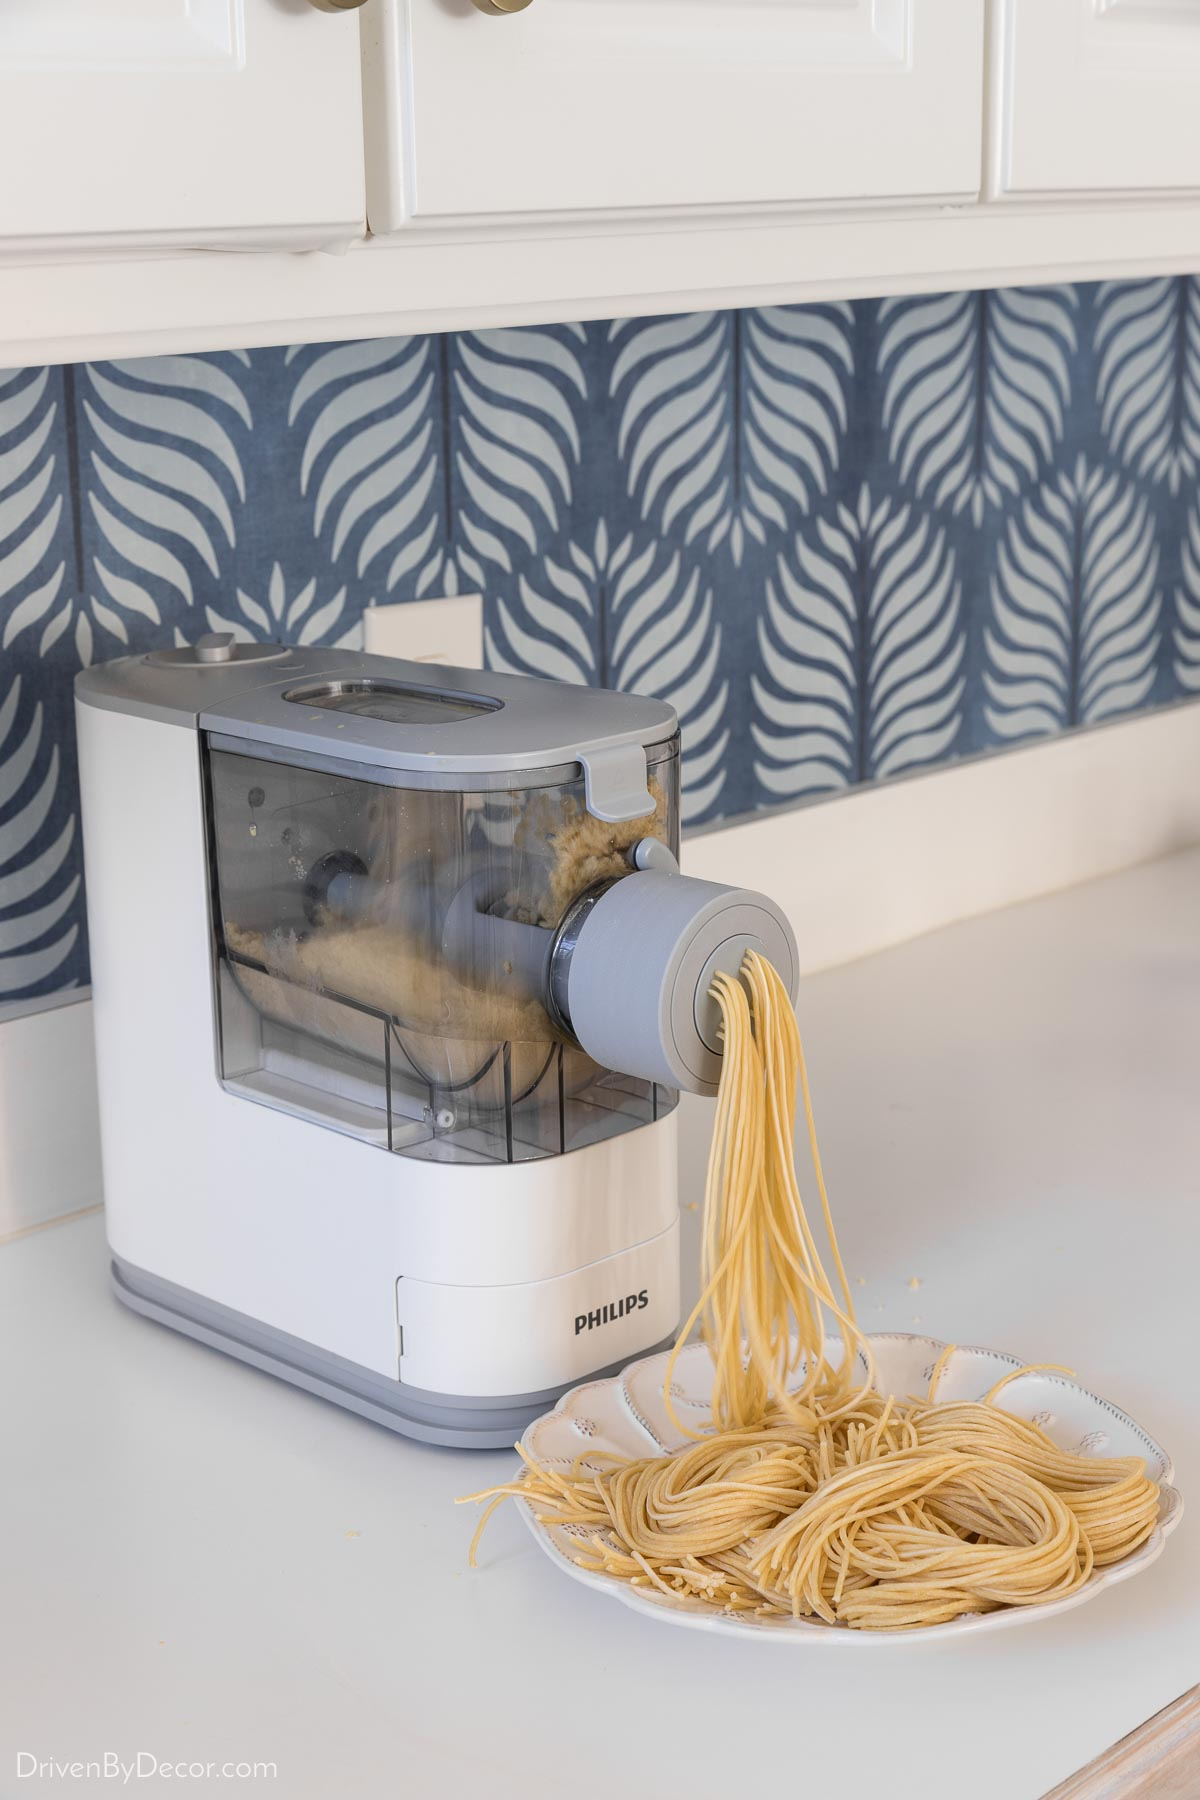 This pasta maker is one of my favorite small kitchen appliances!